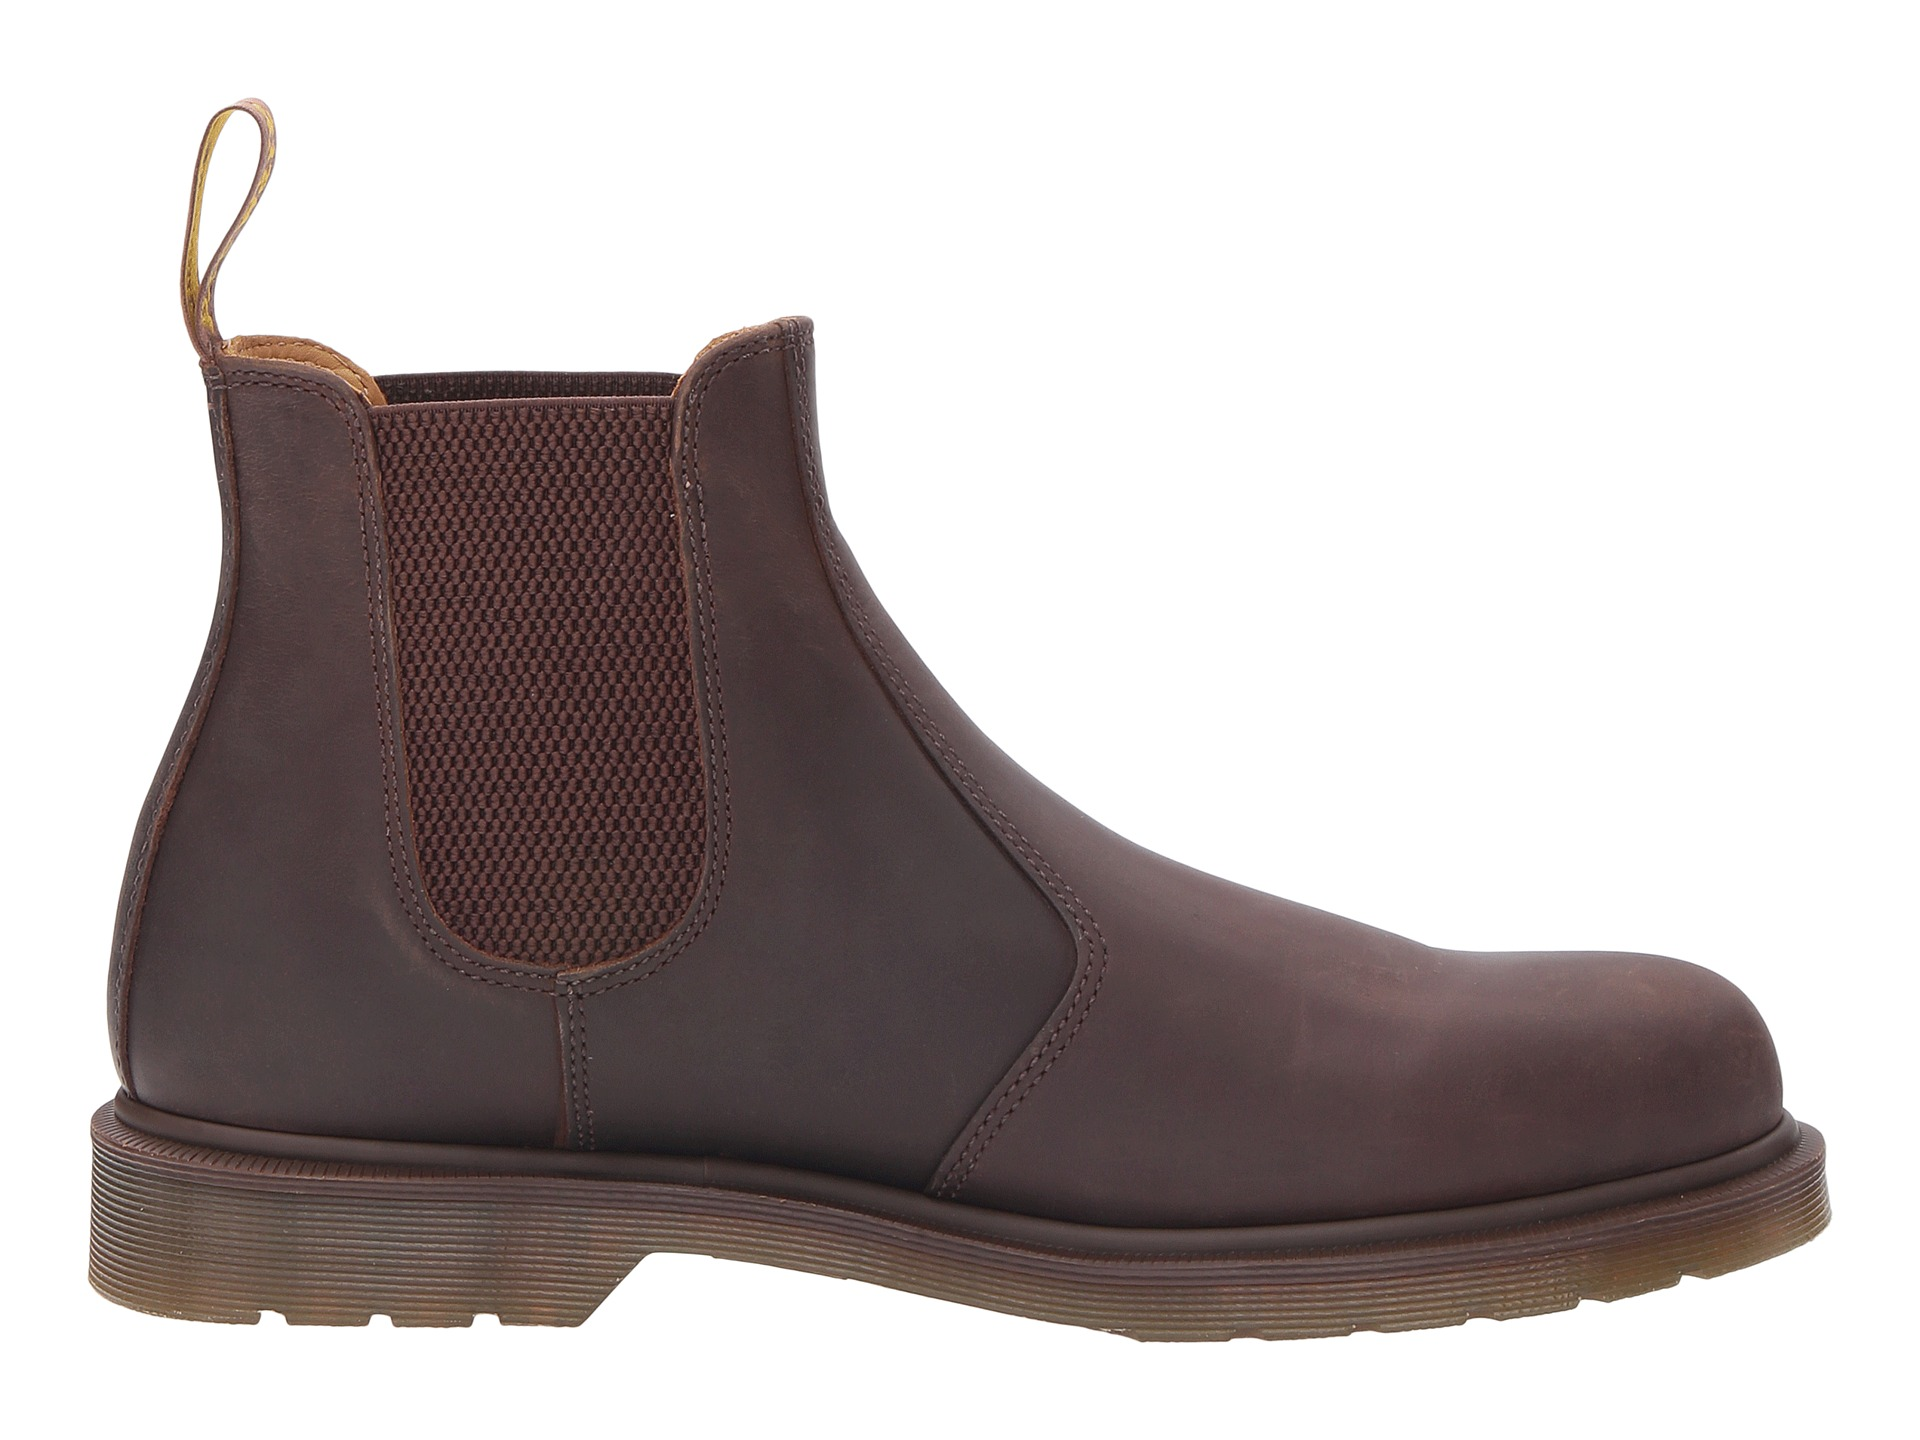 dr martens 2976 chelsea boot gaucho free shipping both ways. Black Bedroom Furniture Sets. Home Design Ideas